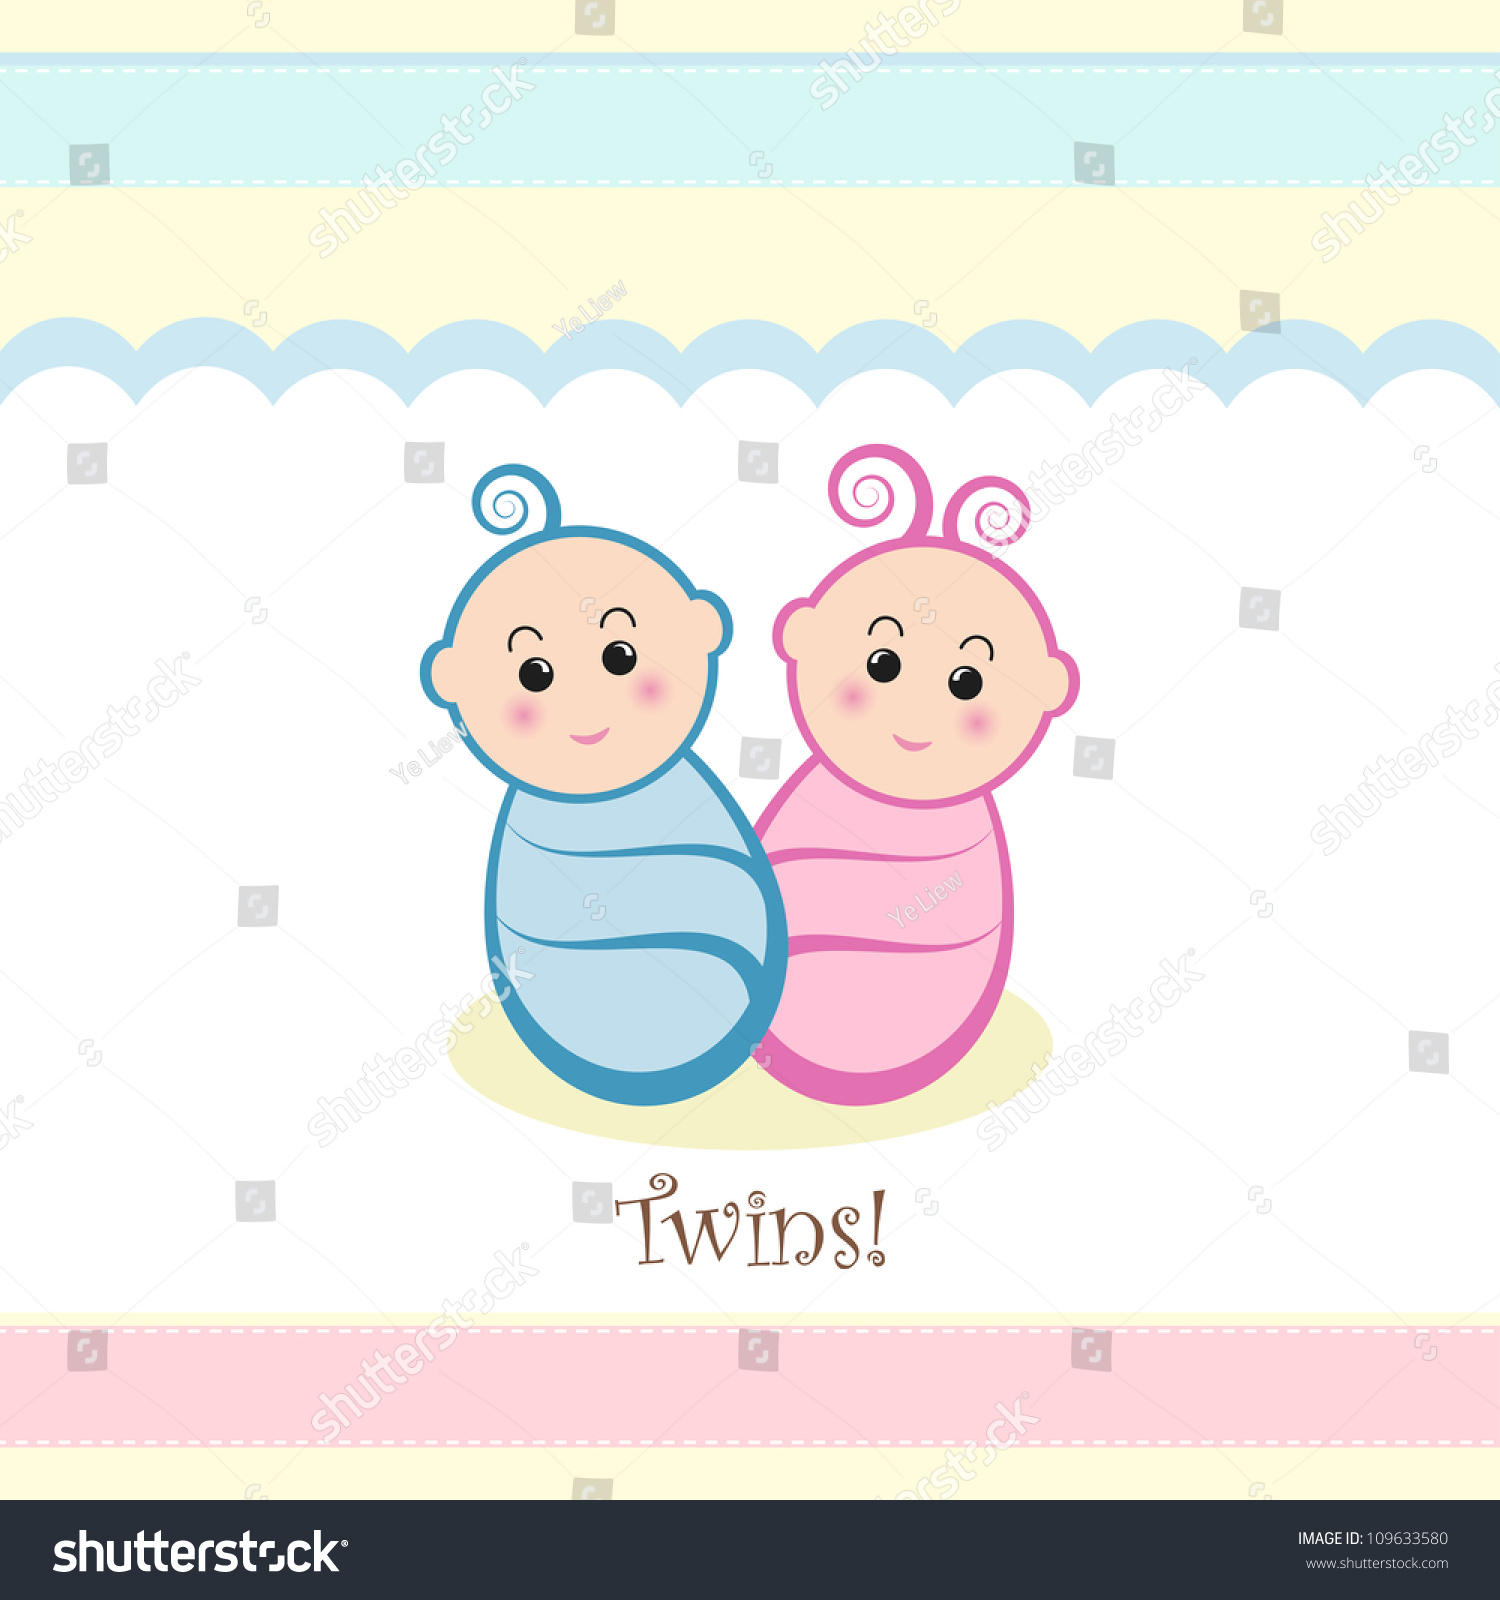 how to create twins baby